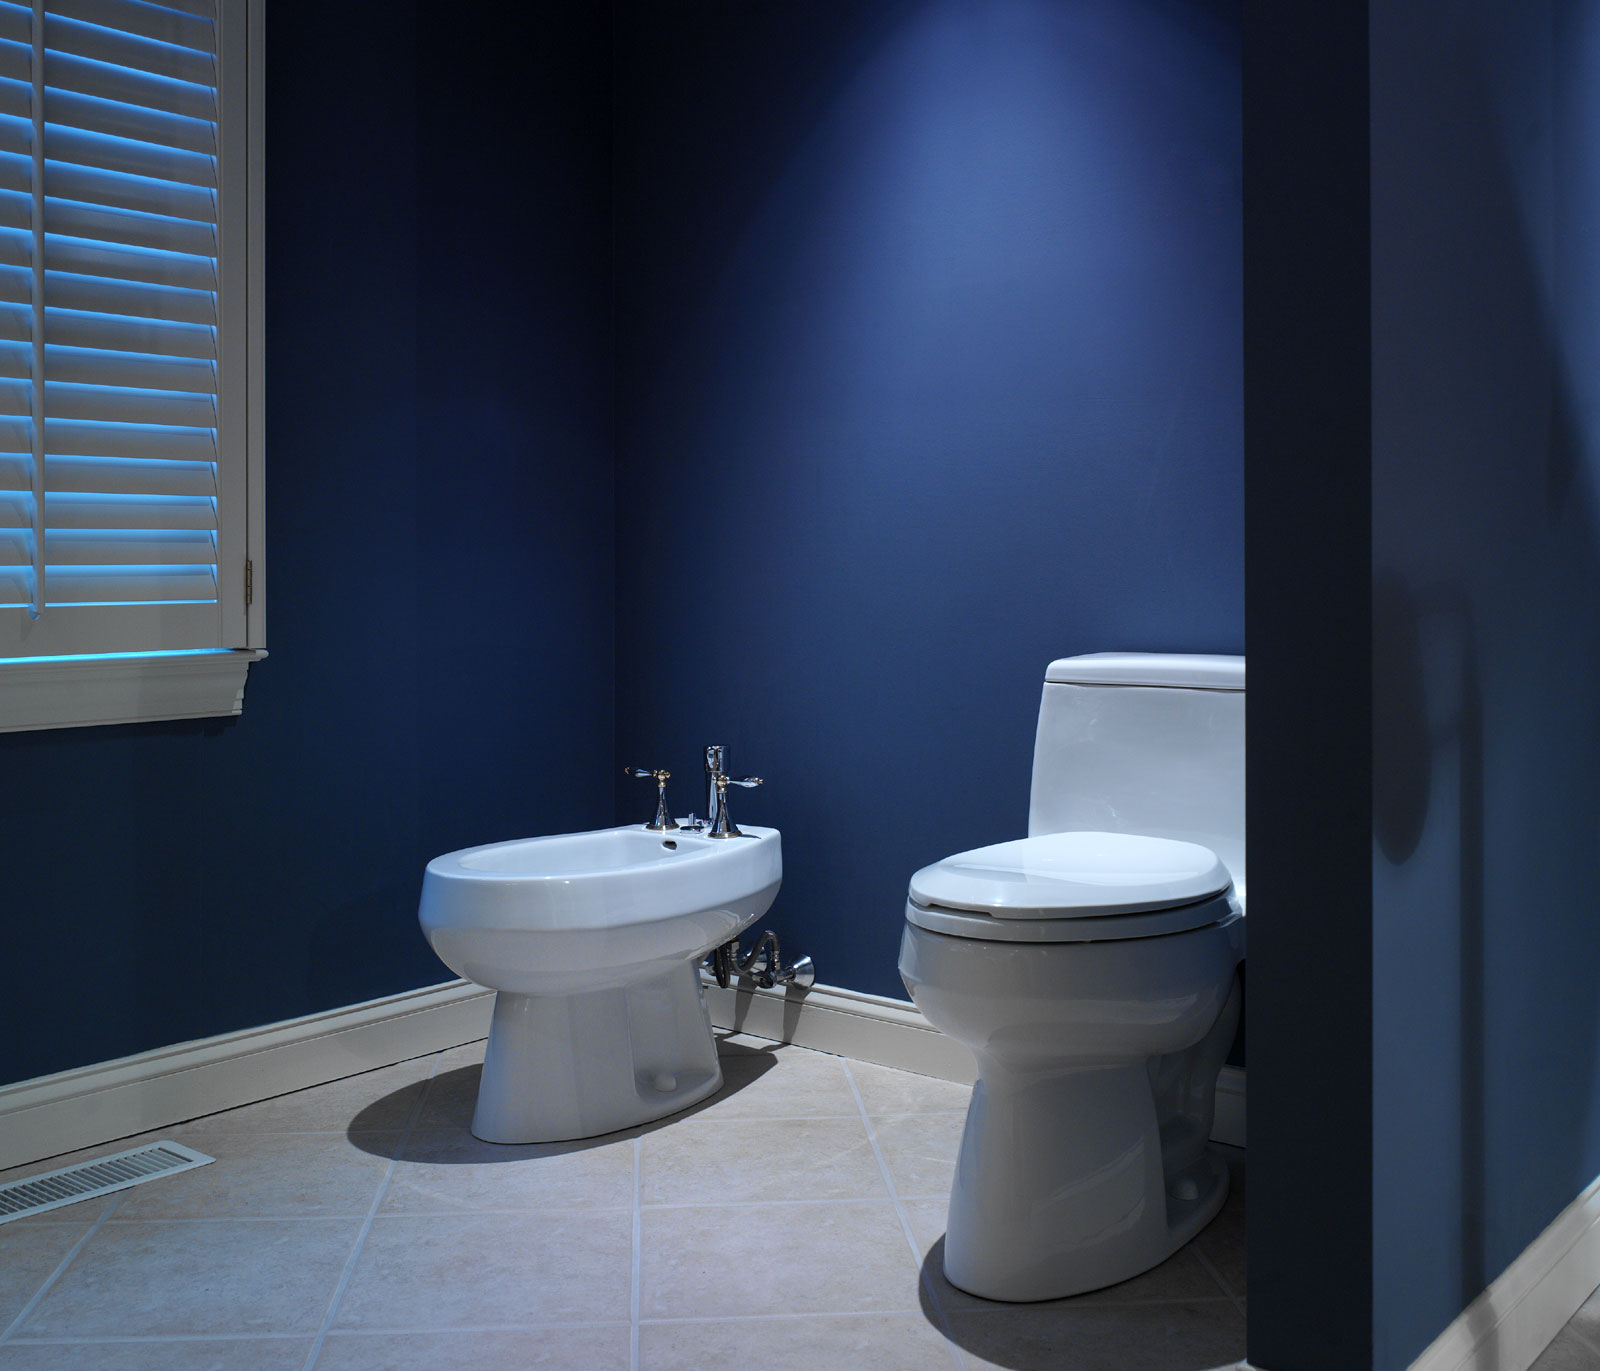 Recessed lights in water closet